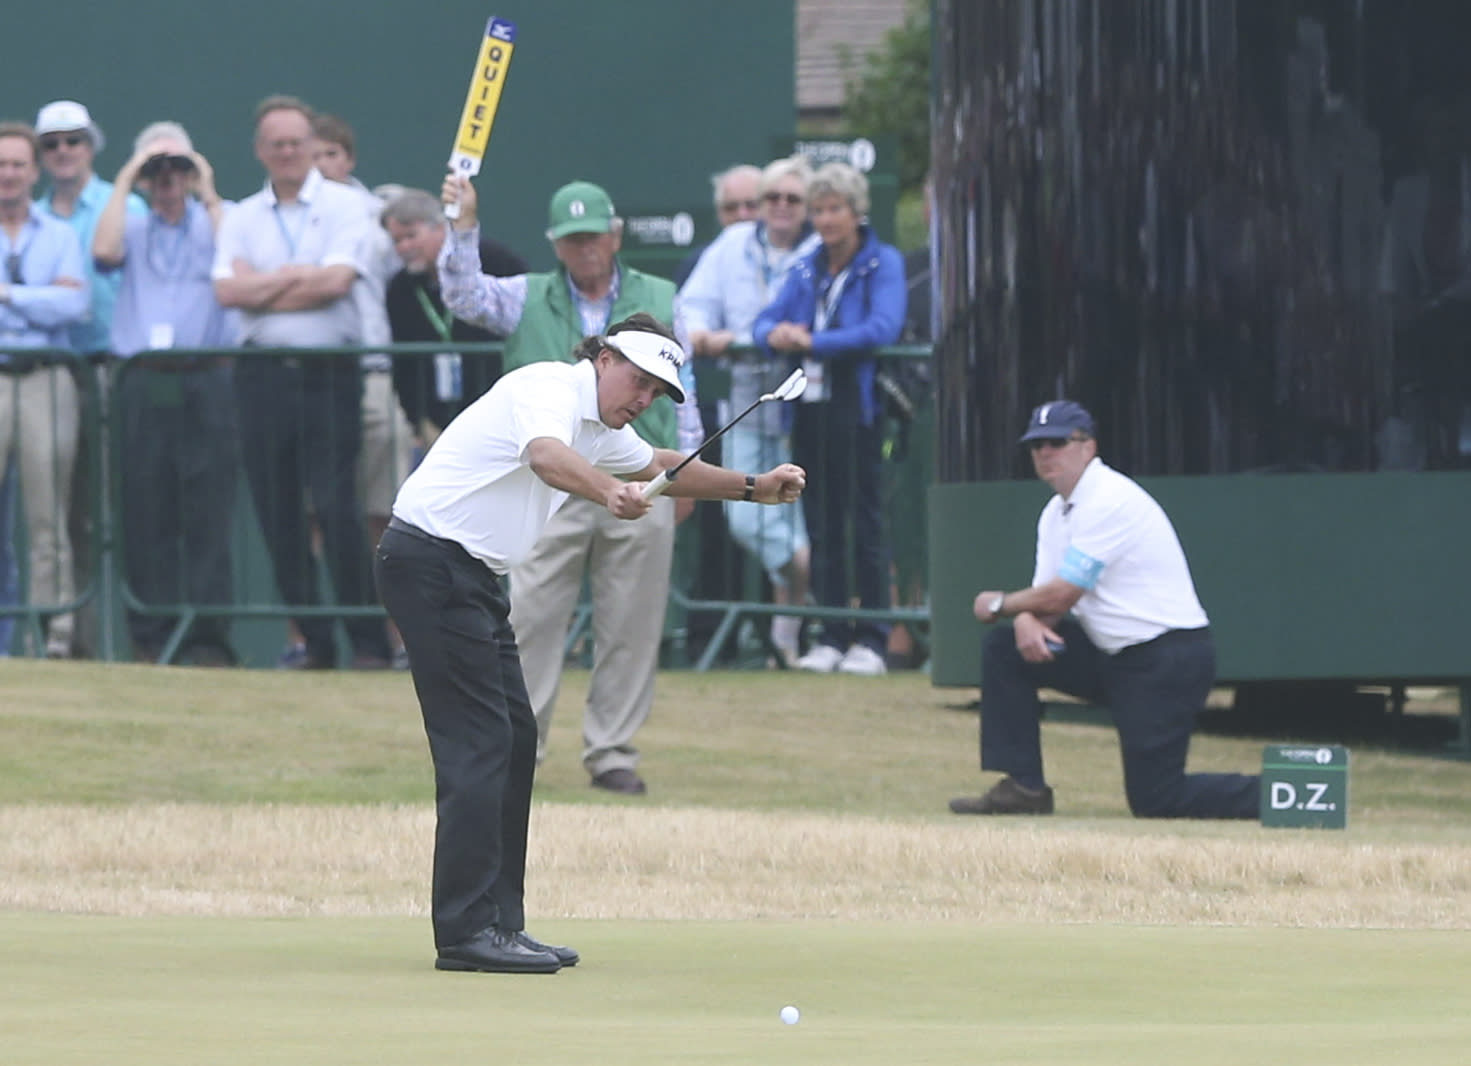 Phil Mickelson of the United States gestures after making his final putt on the 18th green during the final round of the British Open Golf Championship at Muirfield, Scotland, Sunday July 21, 2013. (AP Photo/Scott Heppell)